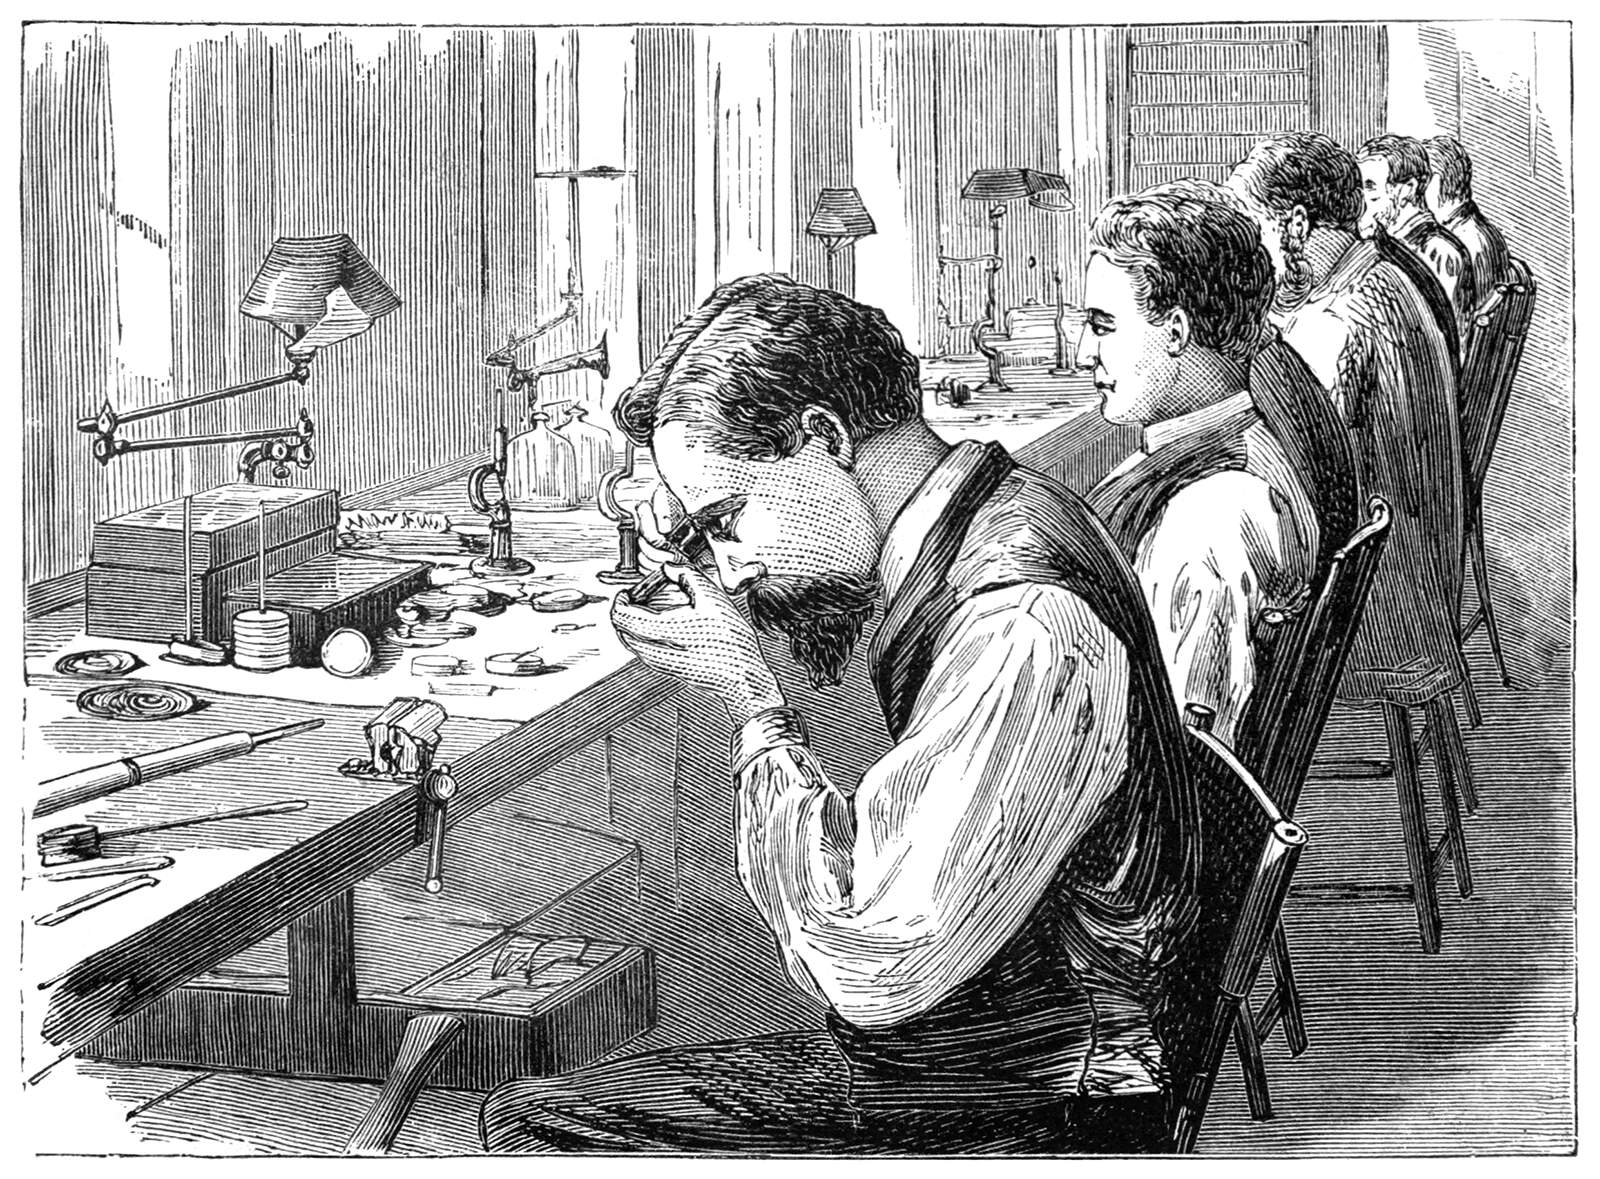 An illustration of a man looking at a watch being built